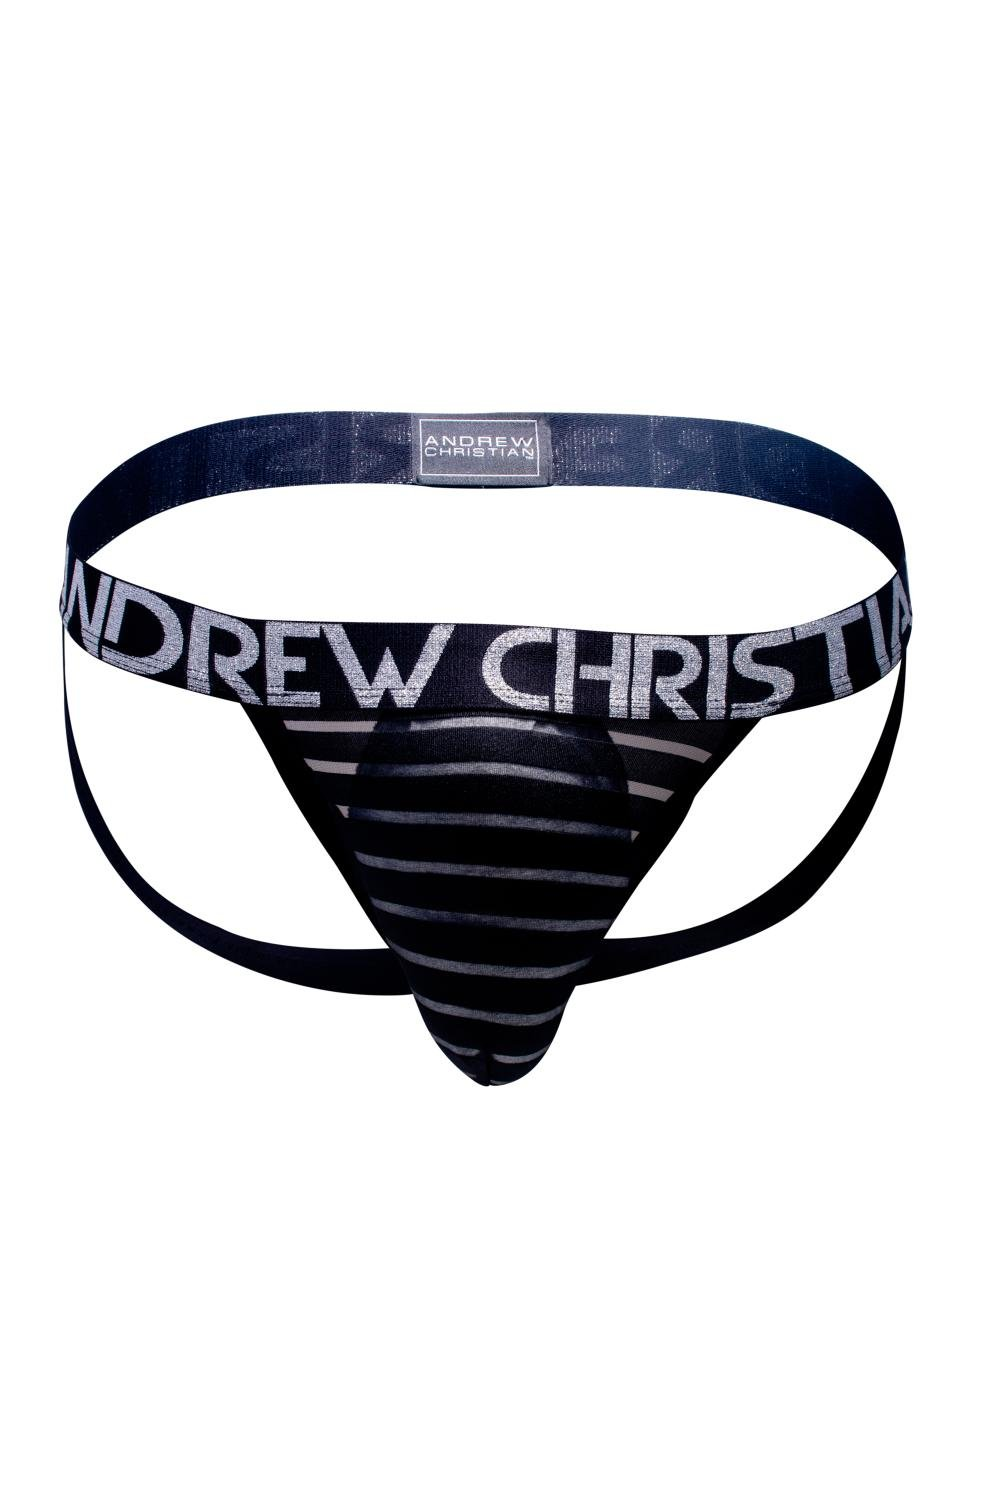 Andrew Christian Sheer Stripe Jock 90634